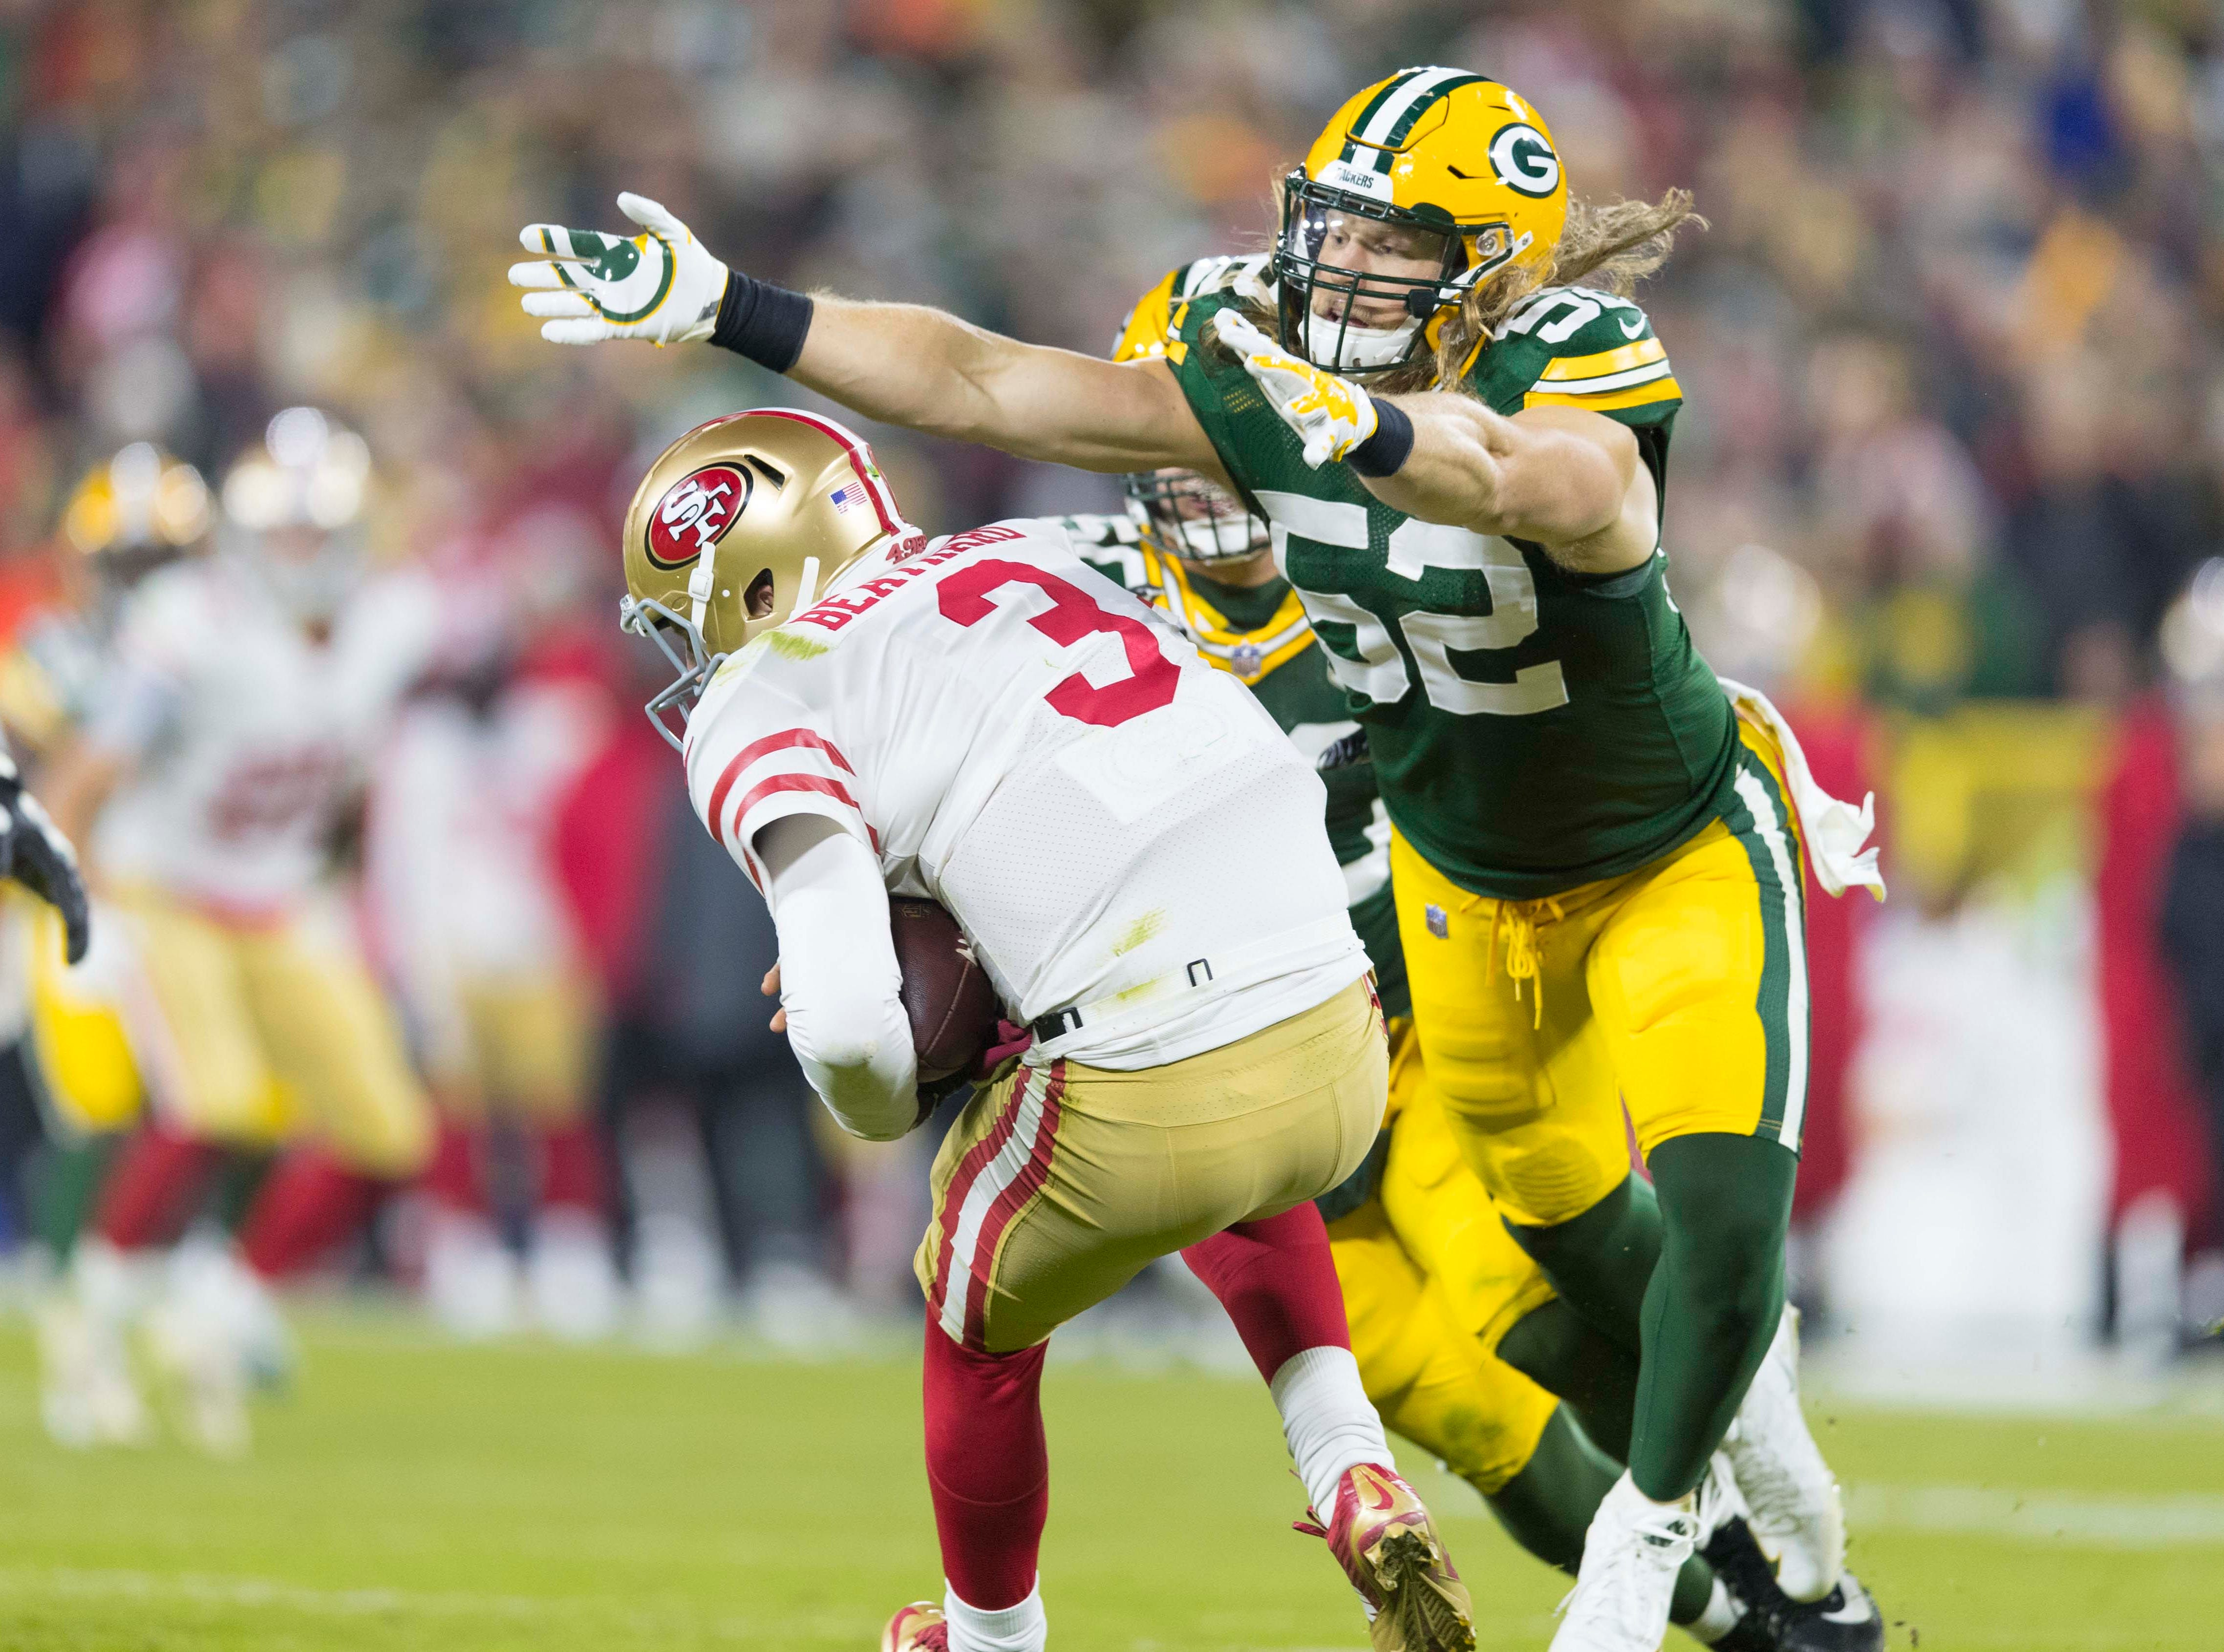 NR: Clay Matthews, OLB, Packers: Agreed to deal with Rams